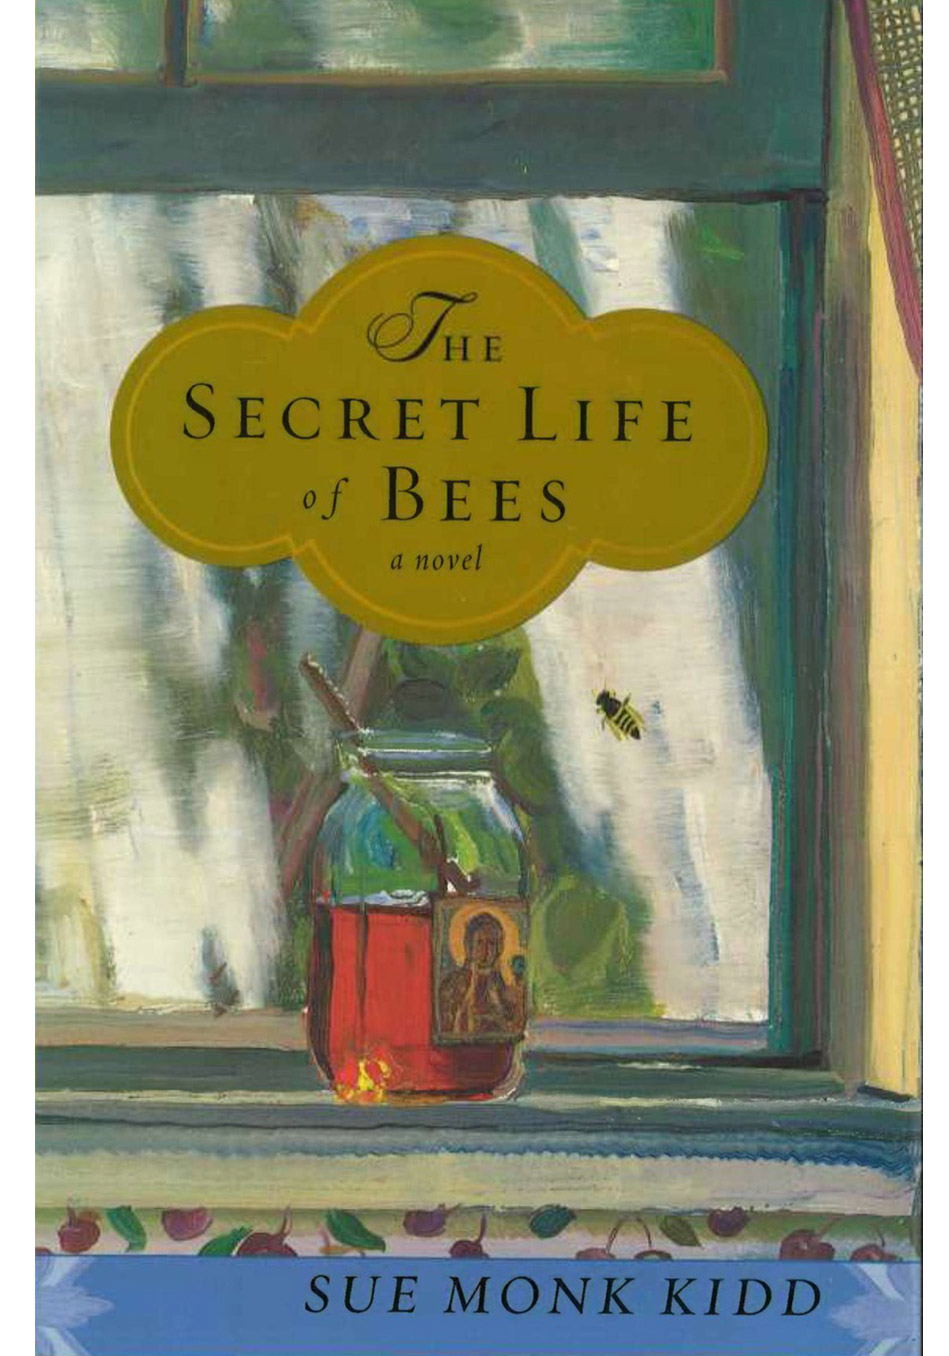 secret life of bees essay the secret life of bees essays gradesaver